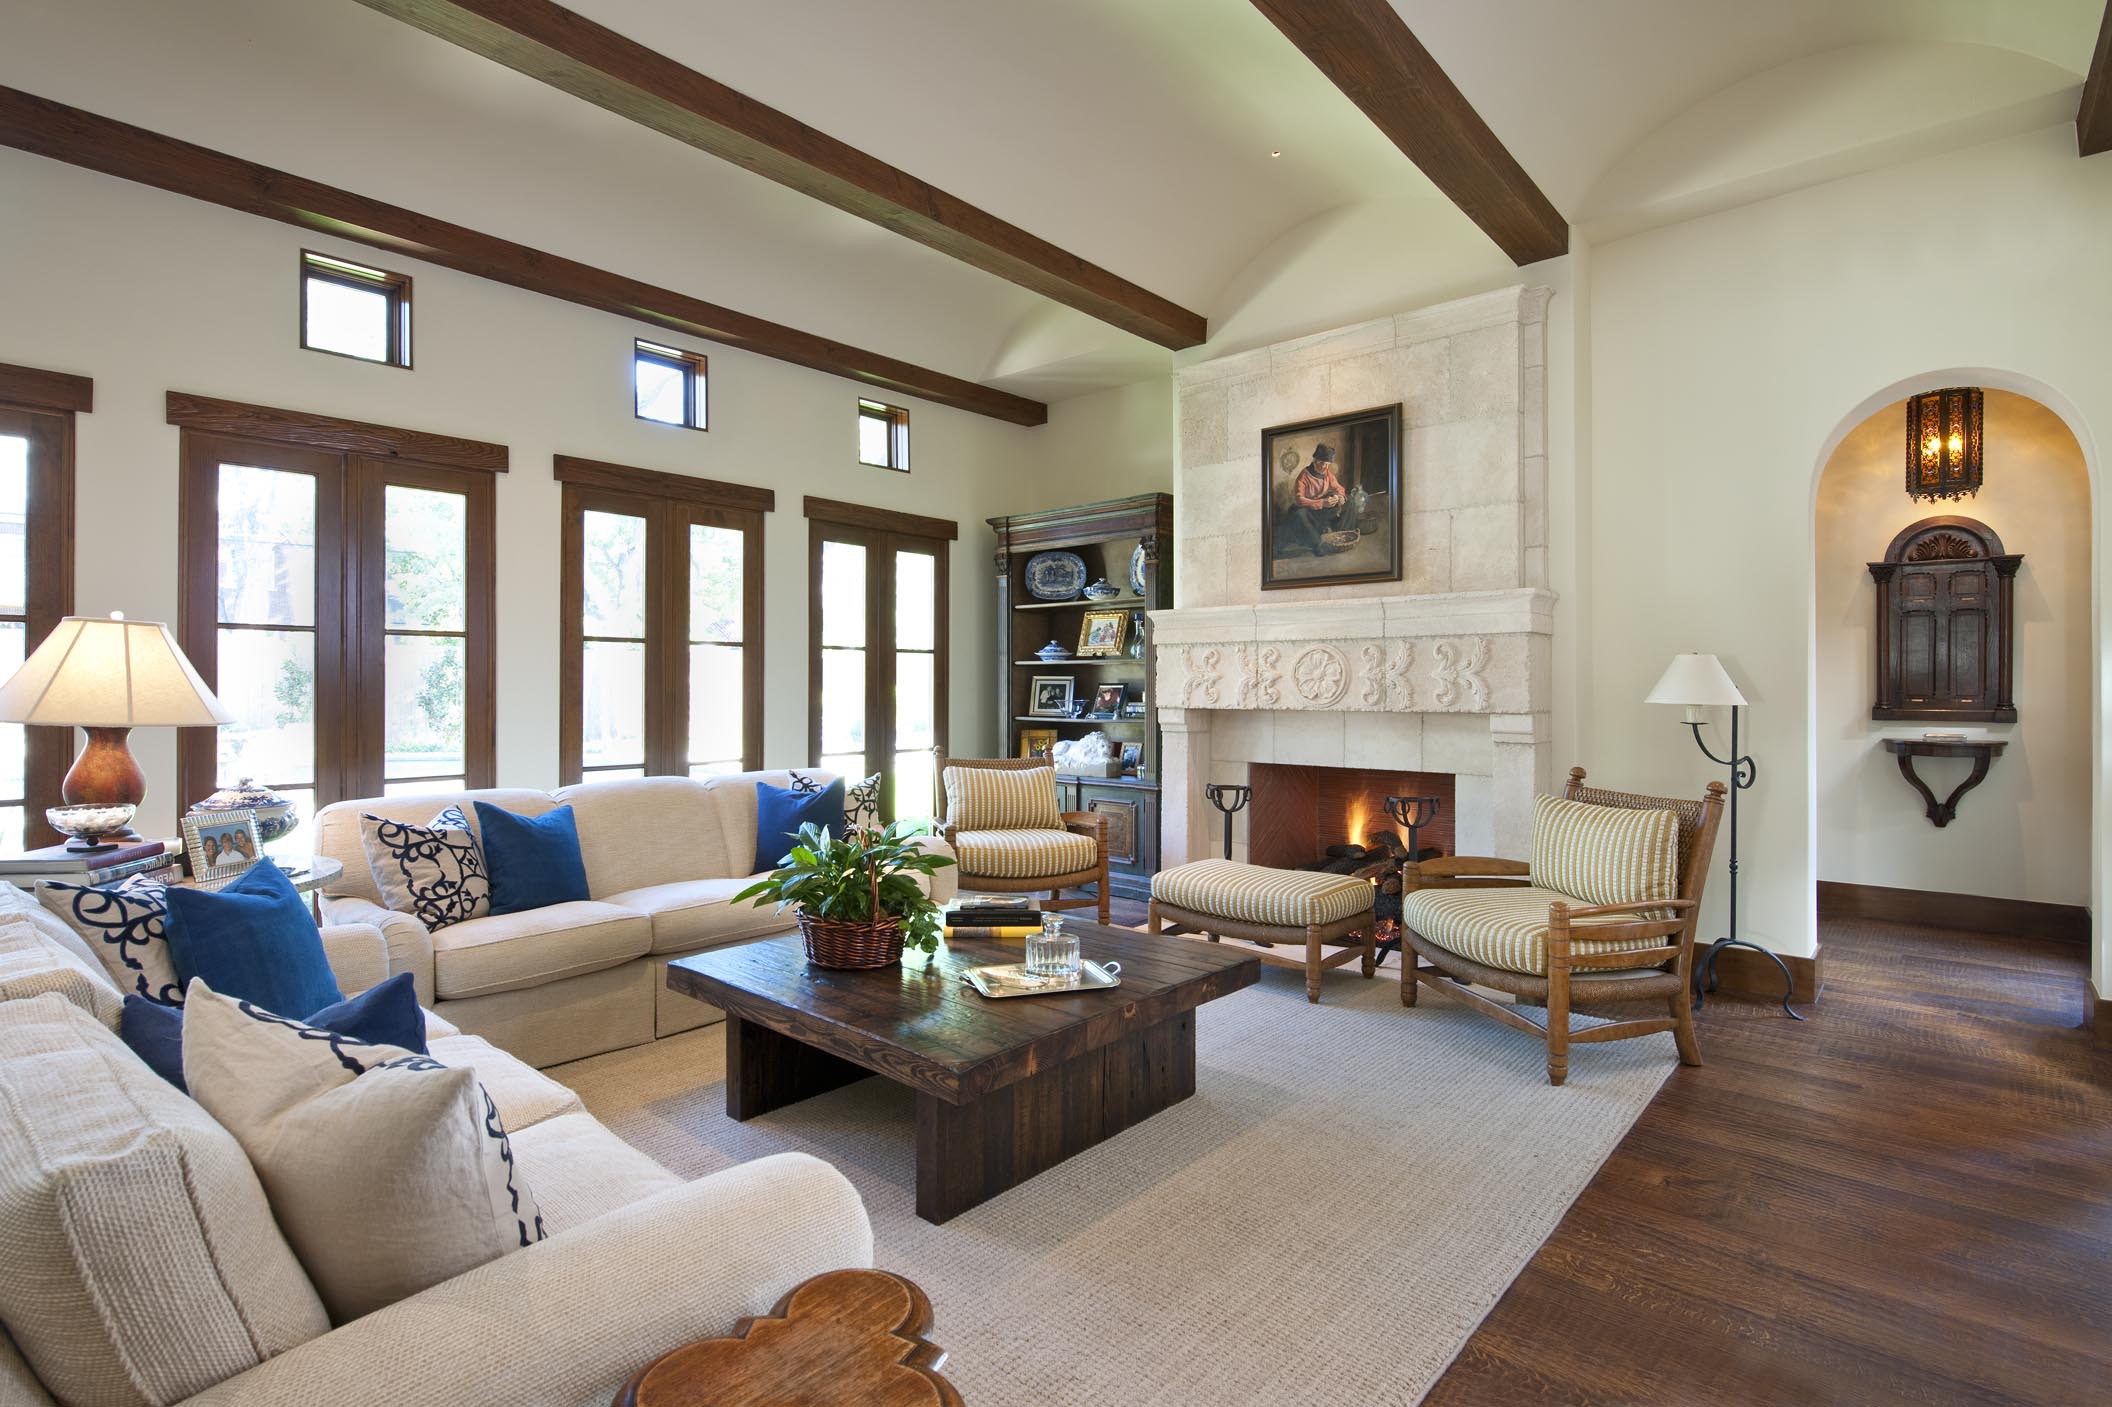 Mediterranean Spanish Living Room With Modern Nuance (Image 14 of 25)